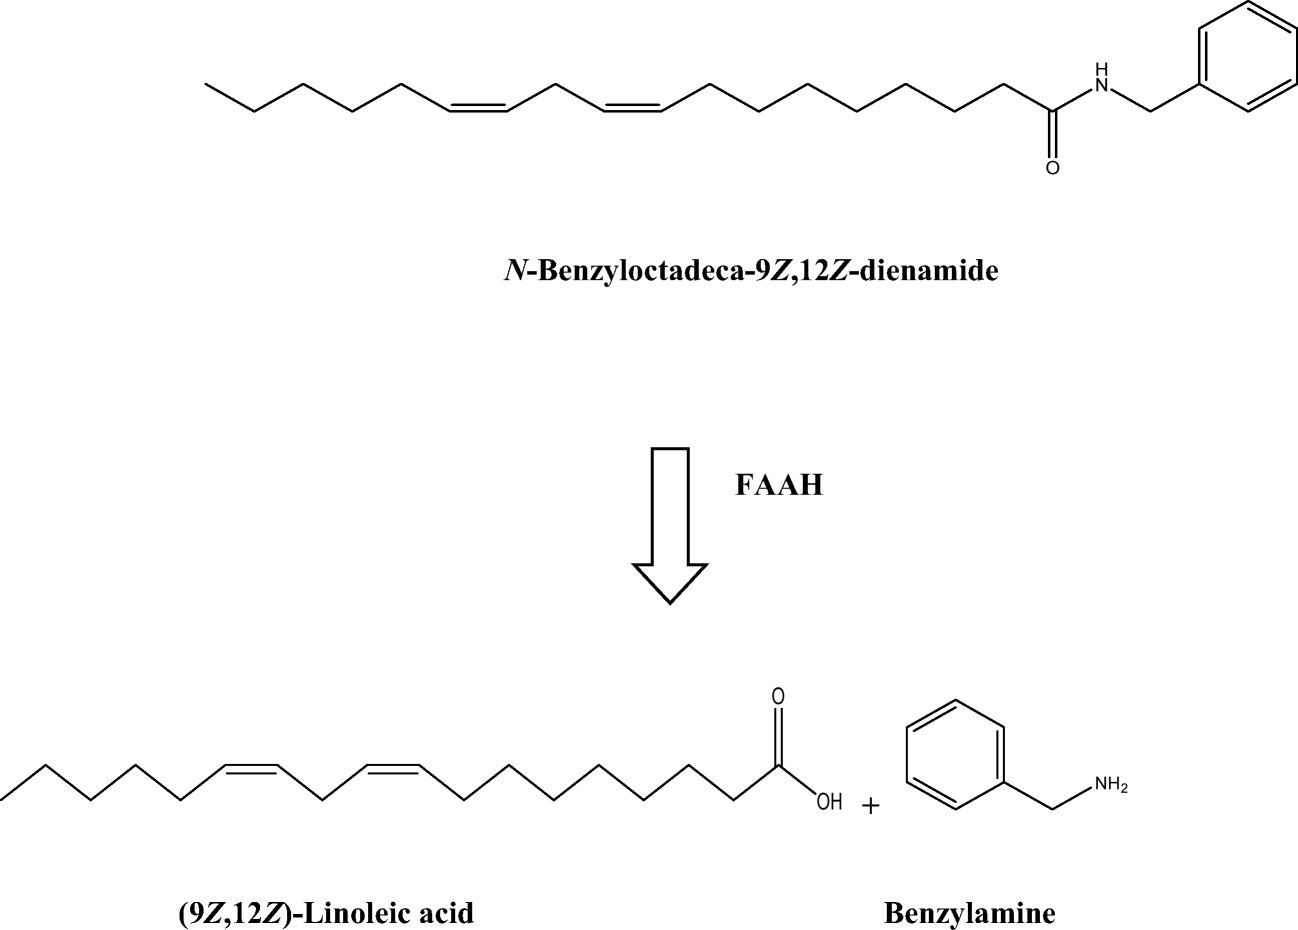 Inhibition of Fatty Acid Amide Hydrolase (FAAH) by Macamides